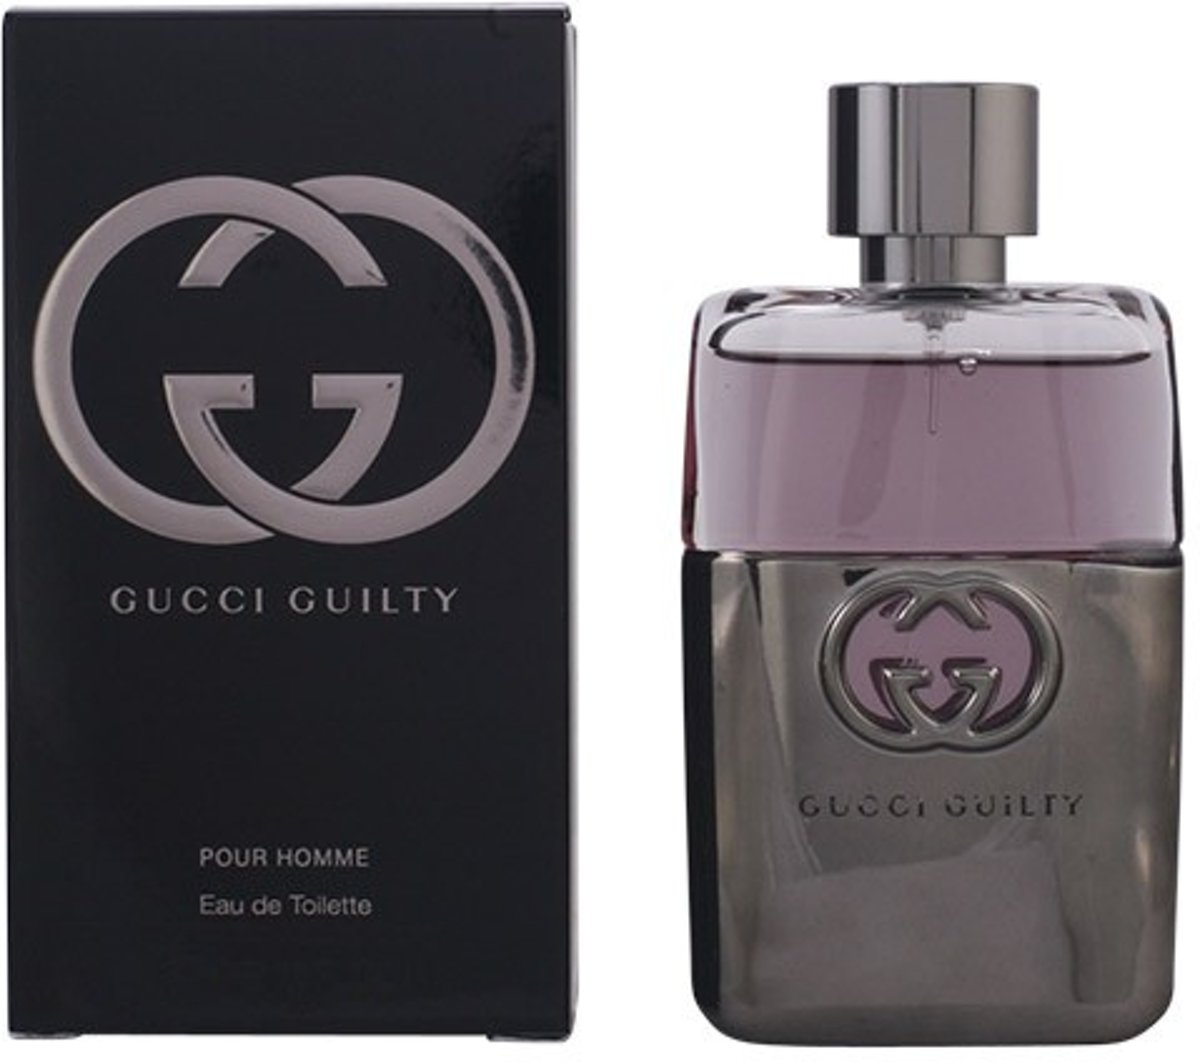 MULTI BUNDEL 2 stuks GUCCI GUILTY POUR HOMME Eau de Toilette Spray 50 ml